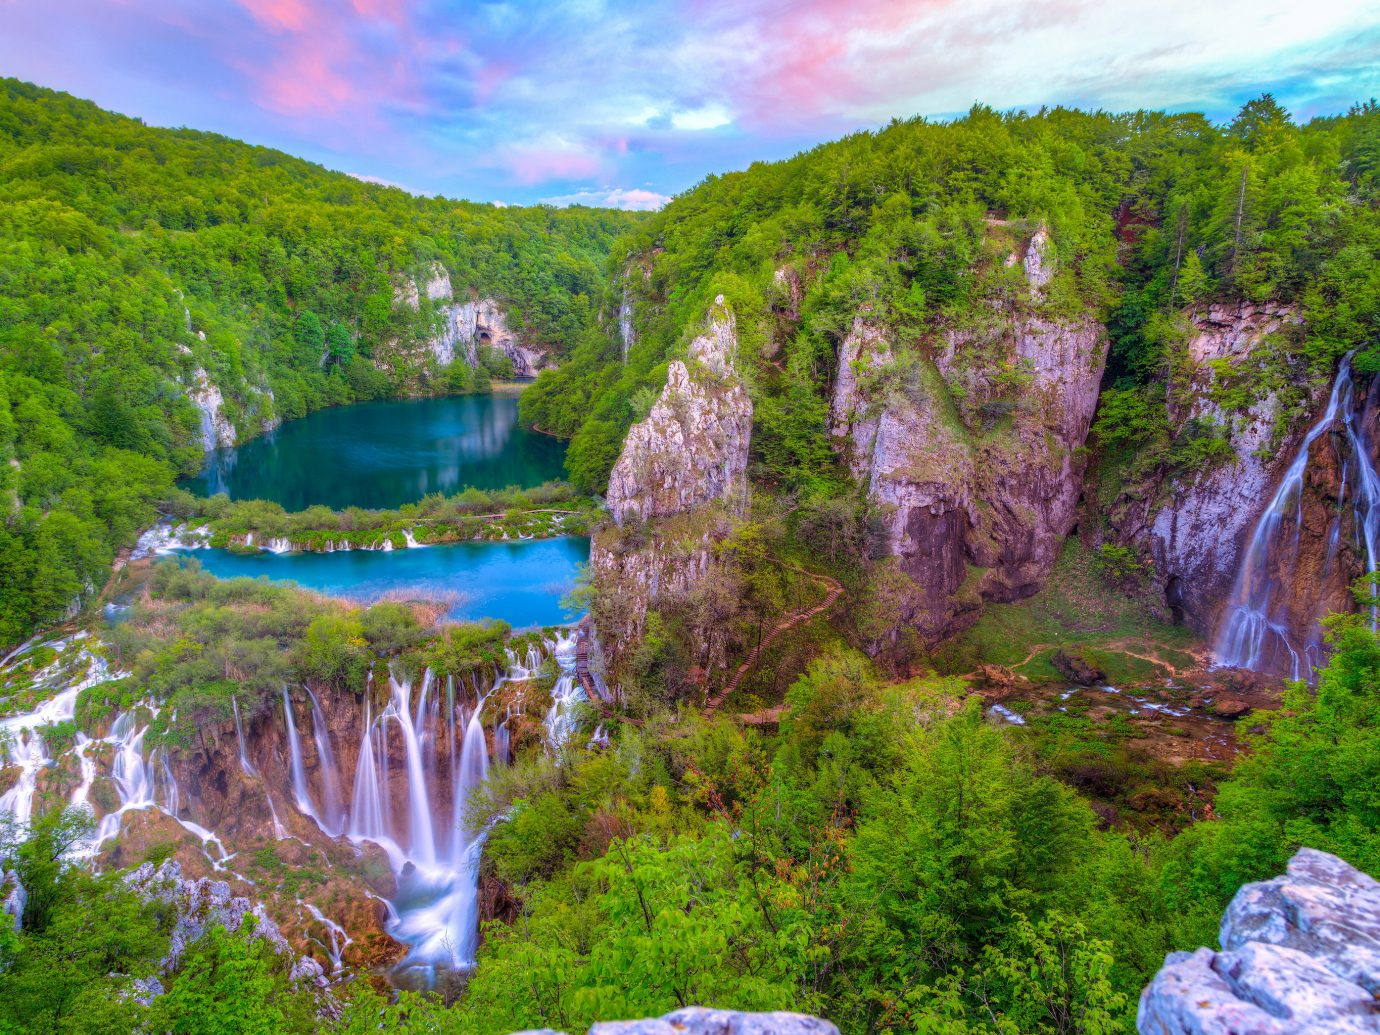 Offbeat Travel Tips Trip Ideas tree Nature Waterfall outdoor body of water wilderness ecosystem water water feature landscape canyon valley fjord park flower reflection national park Lake stream surrounded Forest hillside lush